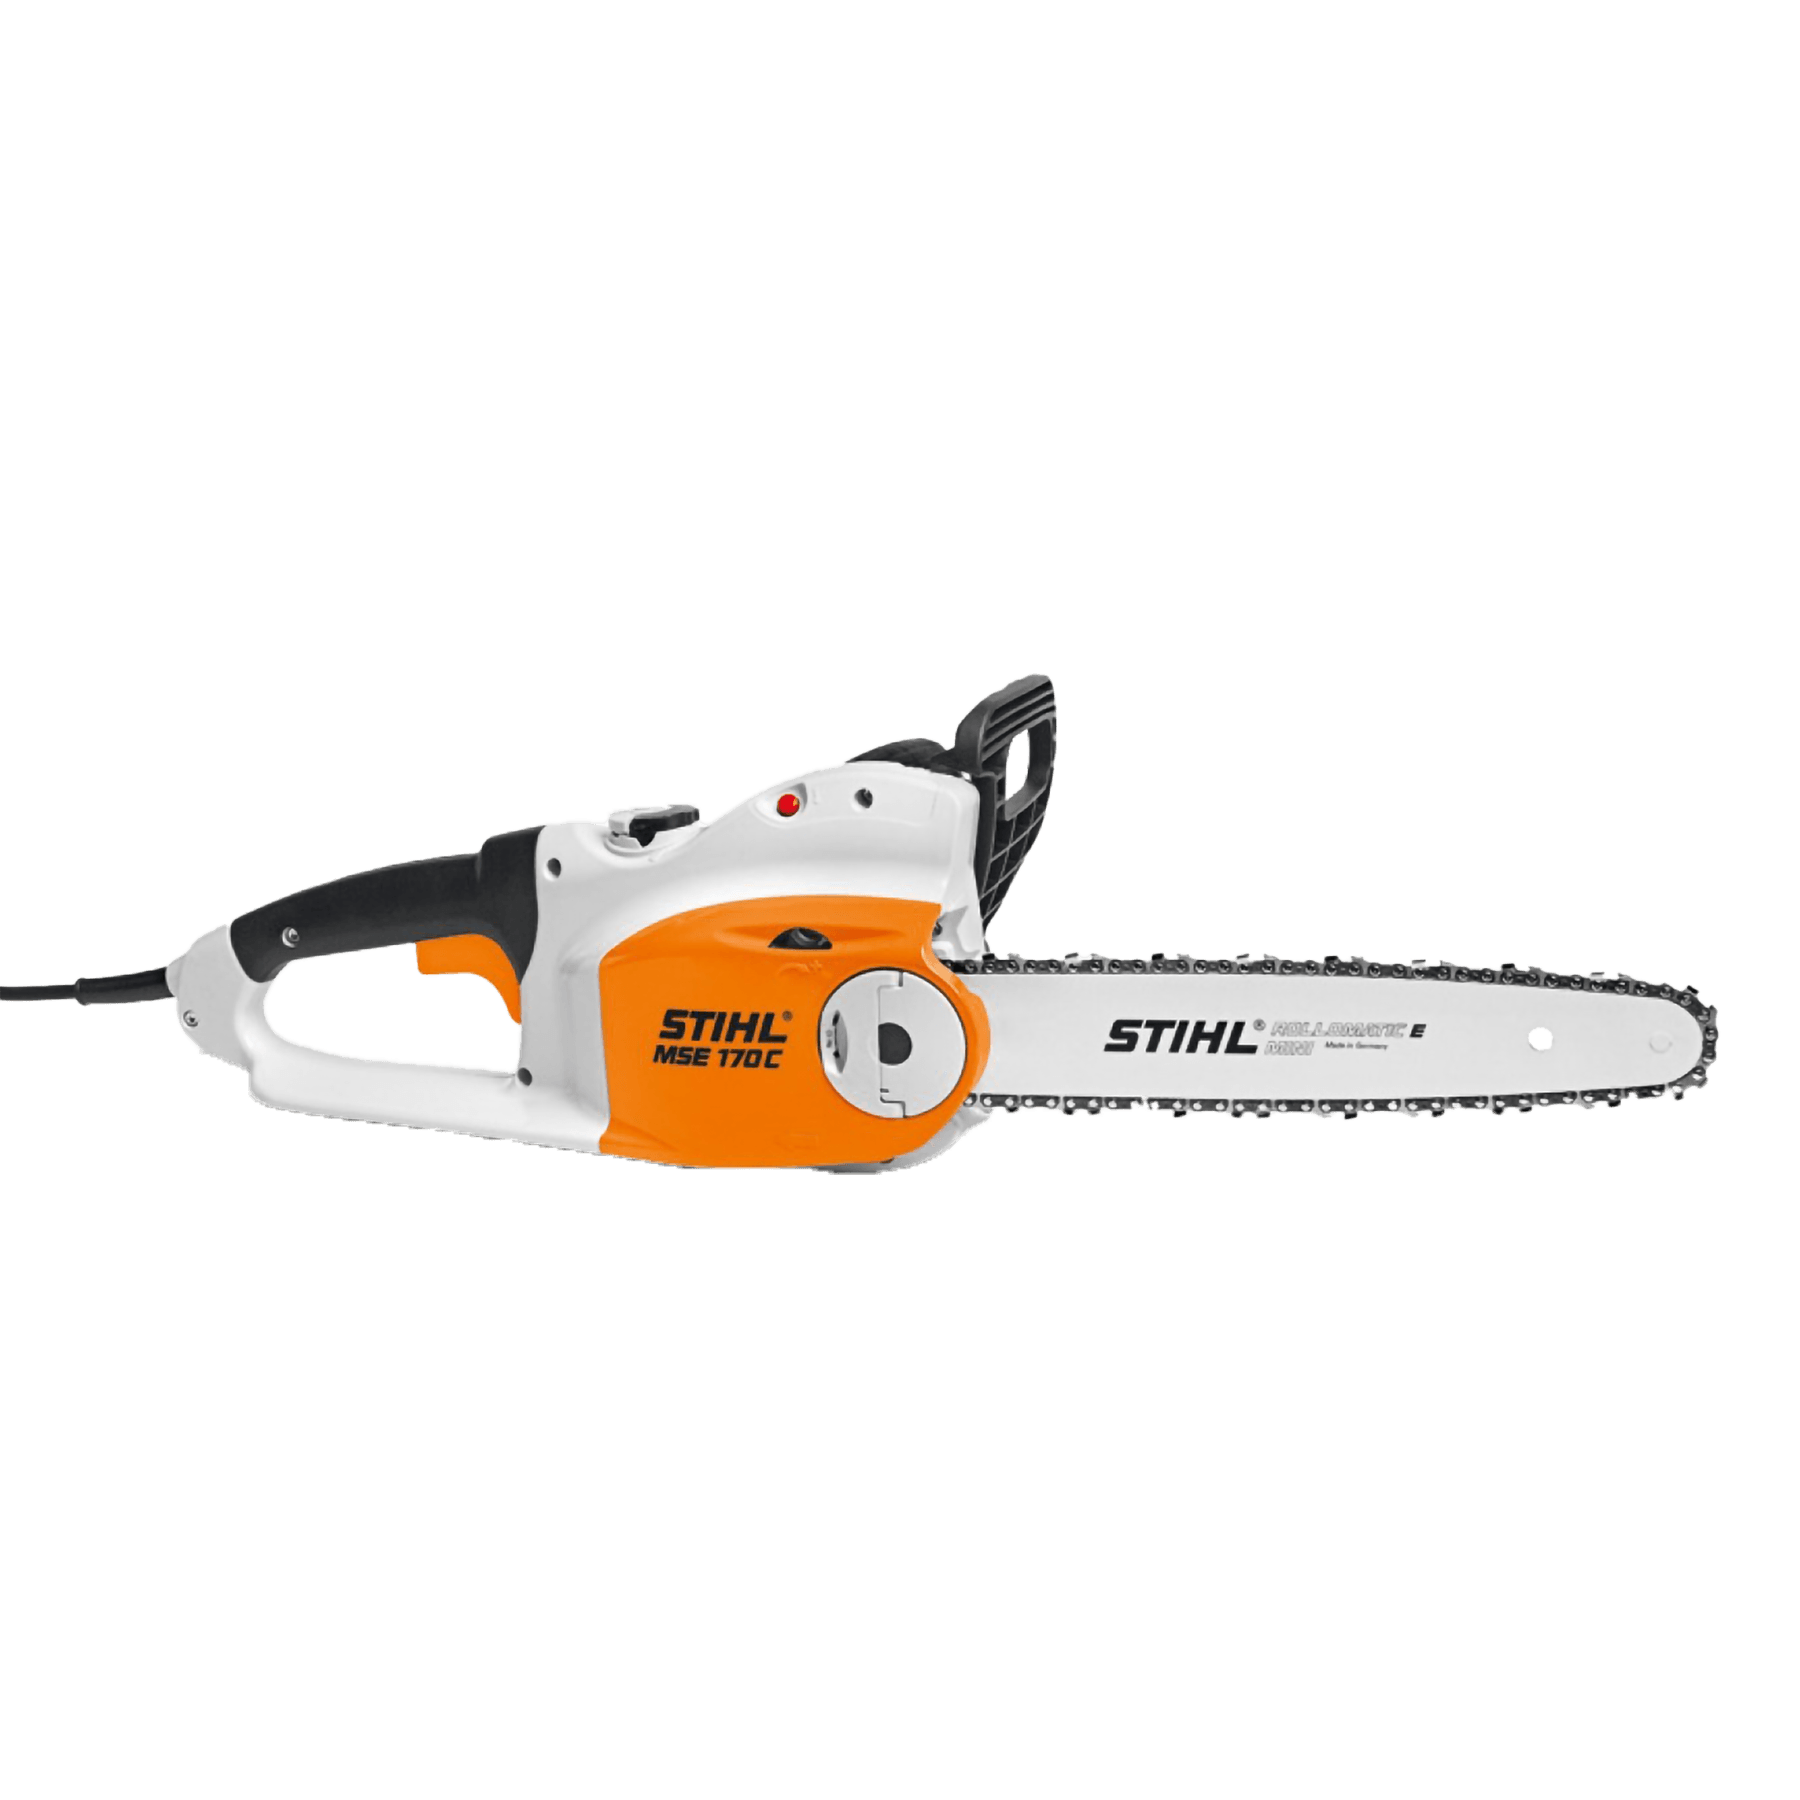 Chain saw electric 14in